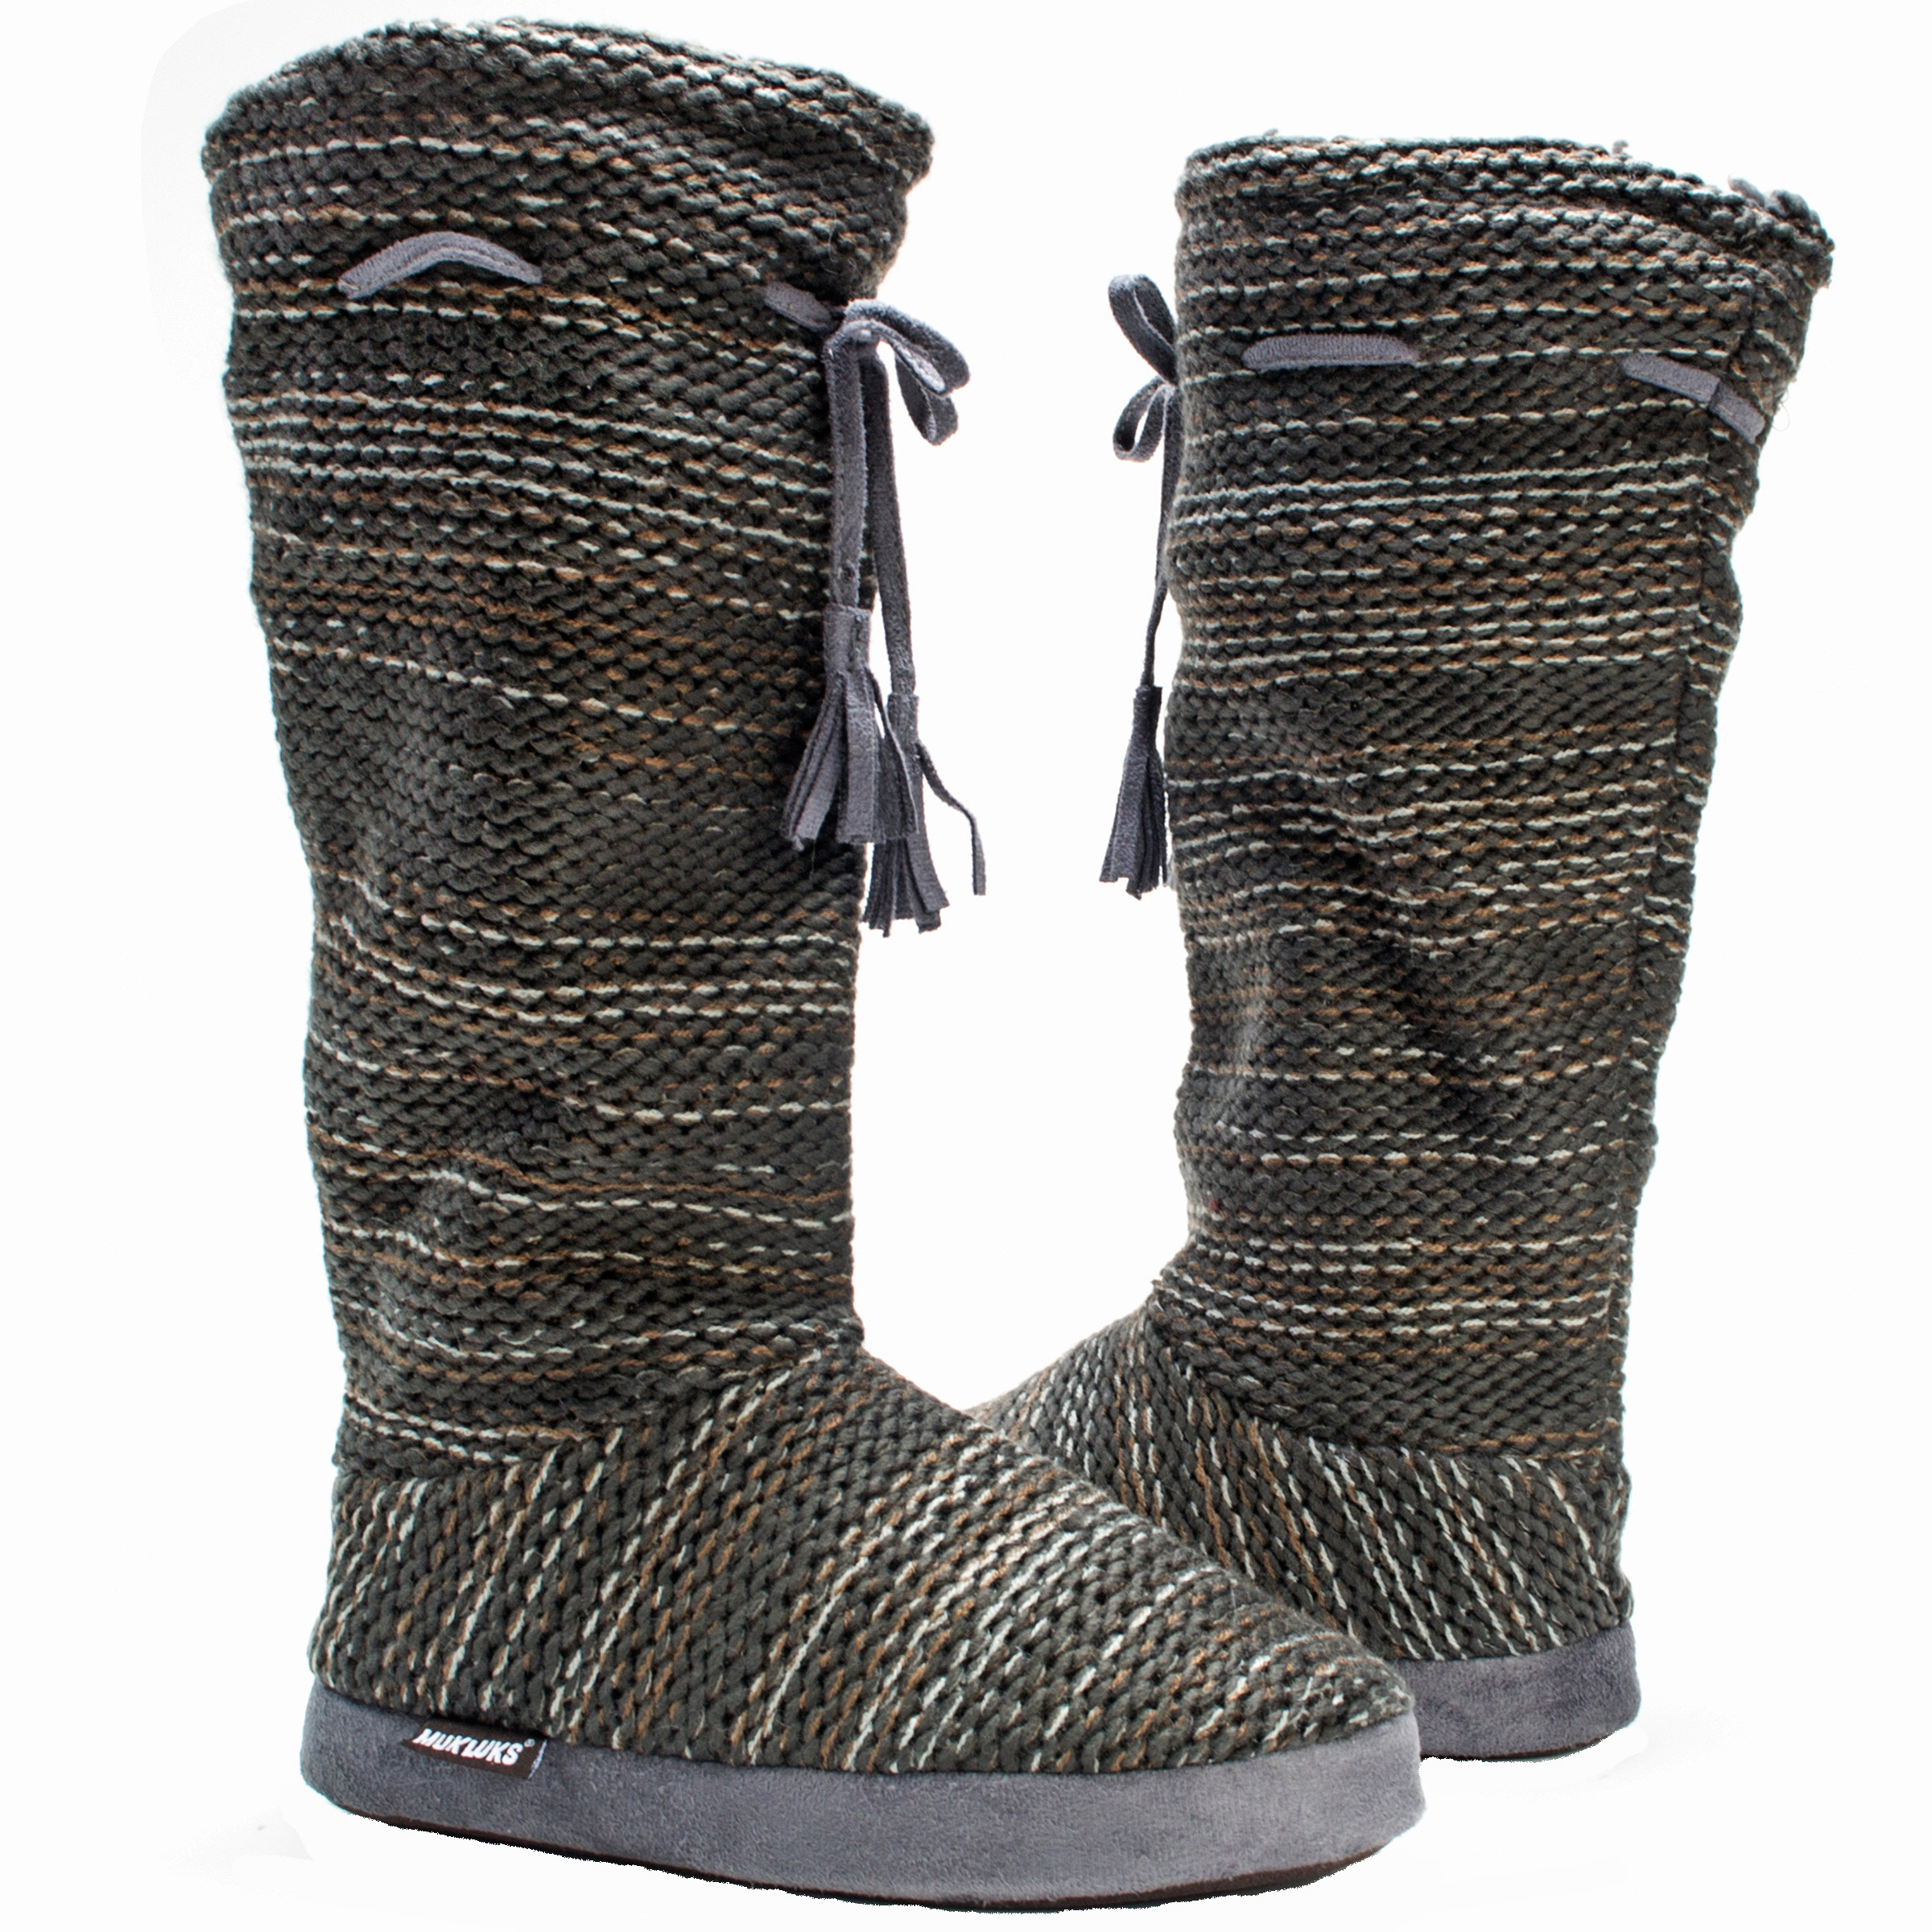 Muk Luks Grommet Women s Slipper Knit Sweater Boots Sherpa